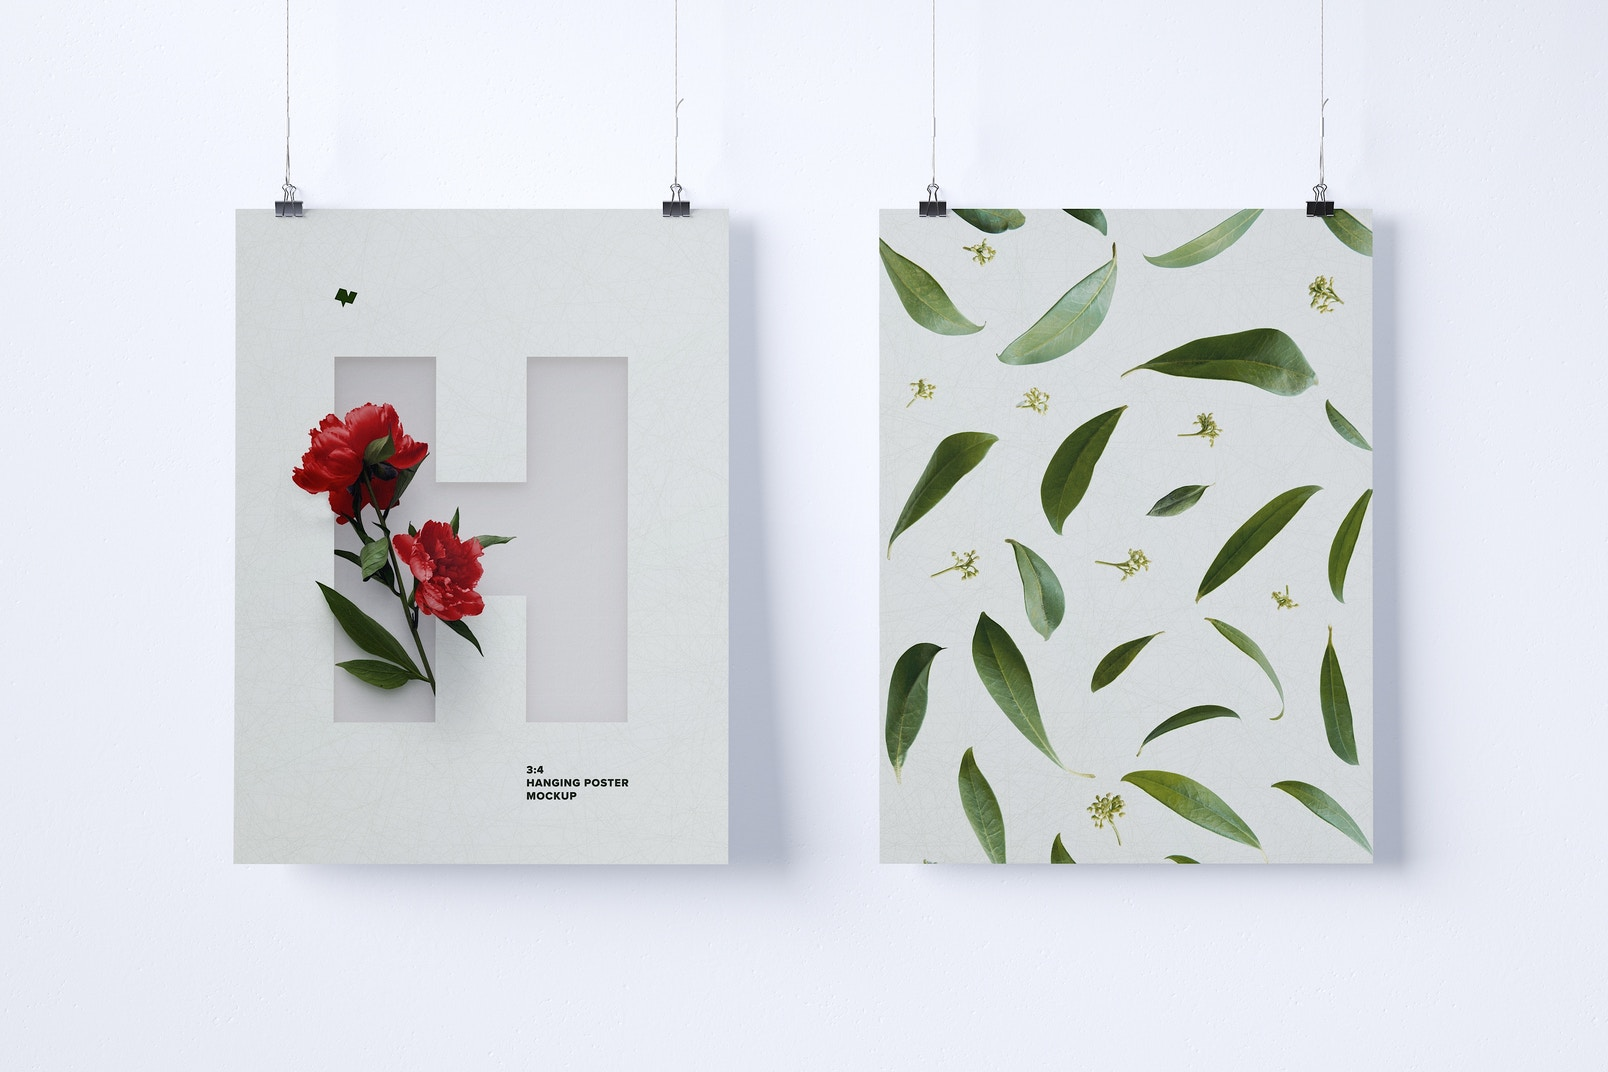 Two 3:4 Portrait Hanging Posters Mockup